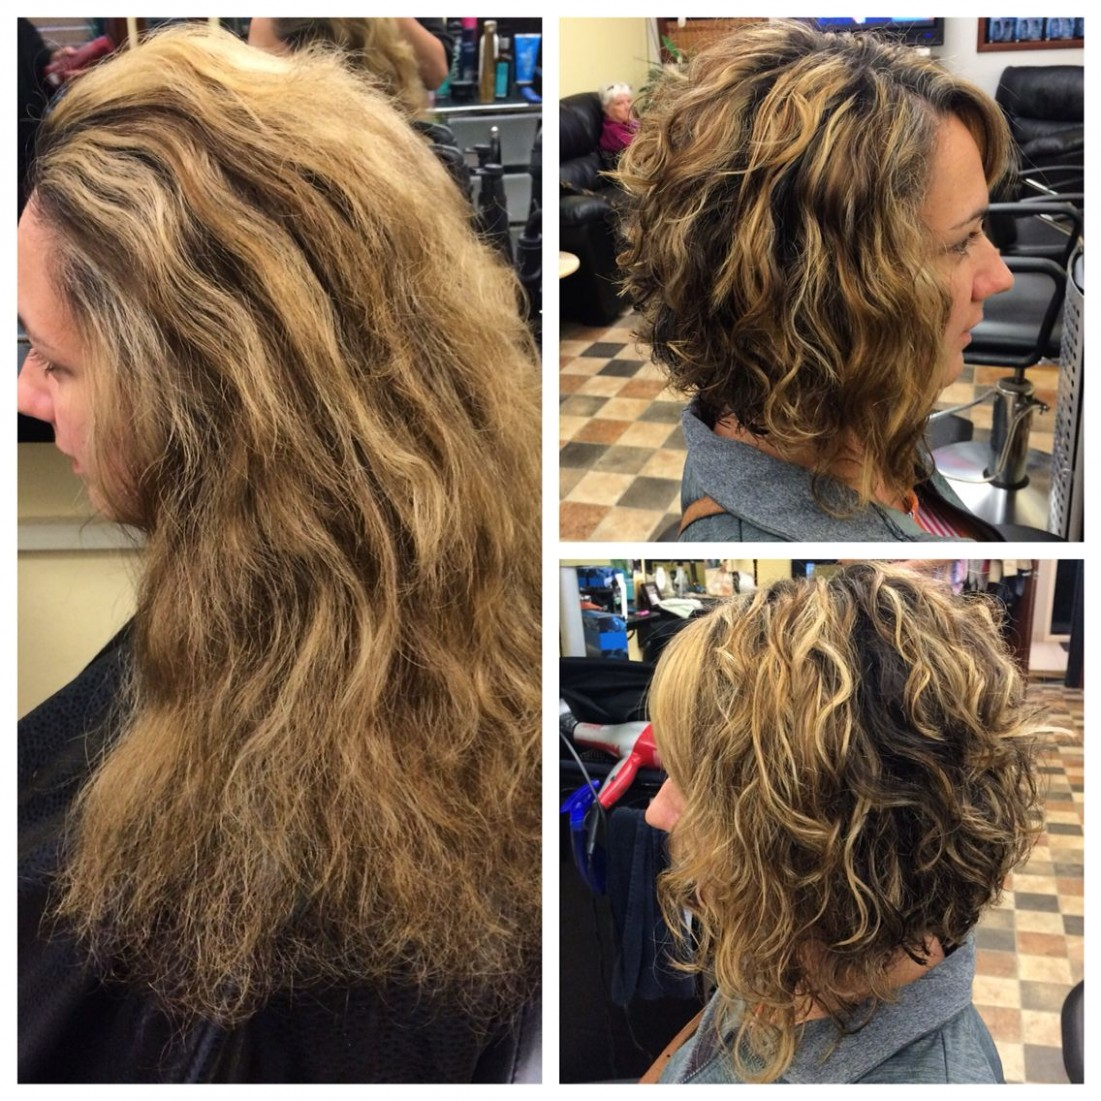 Pin On Hair Inverted Bob Curly Hair